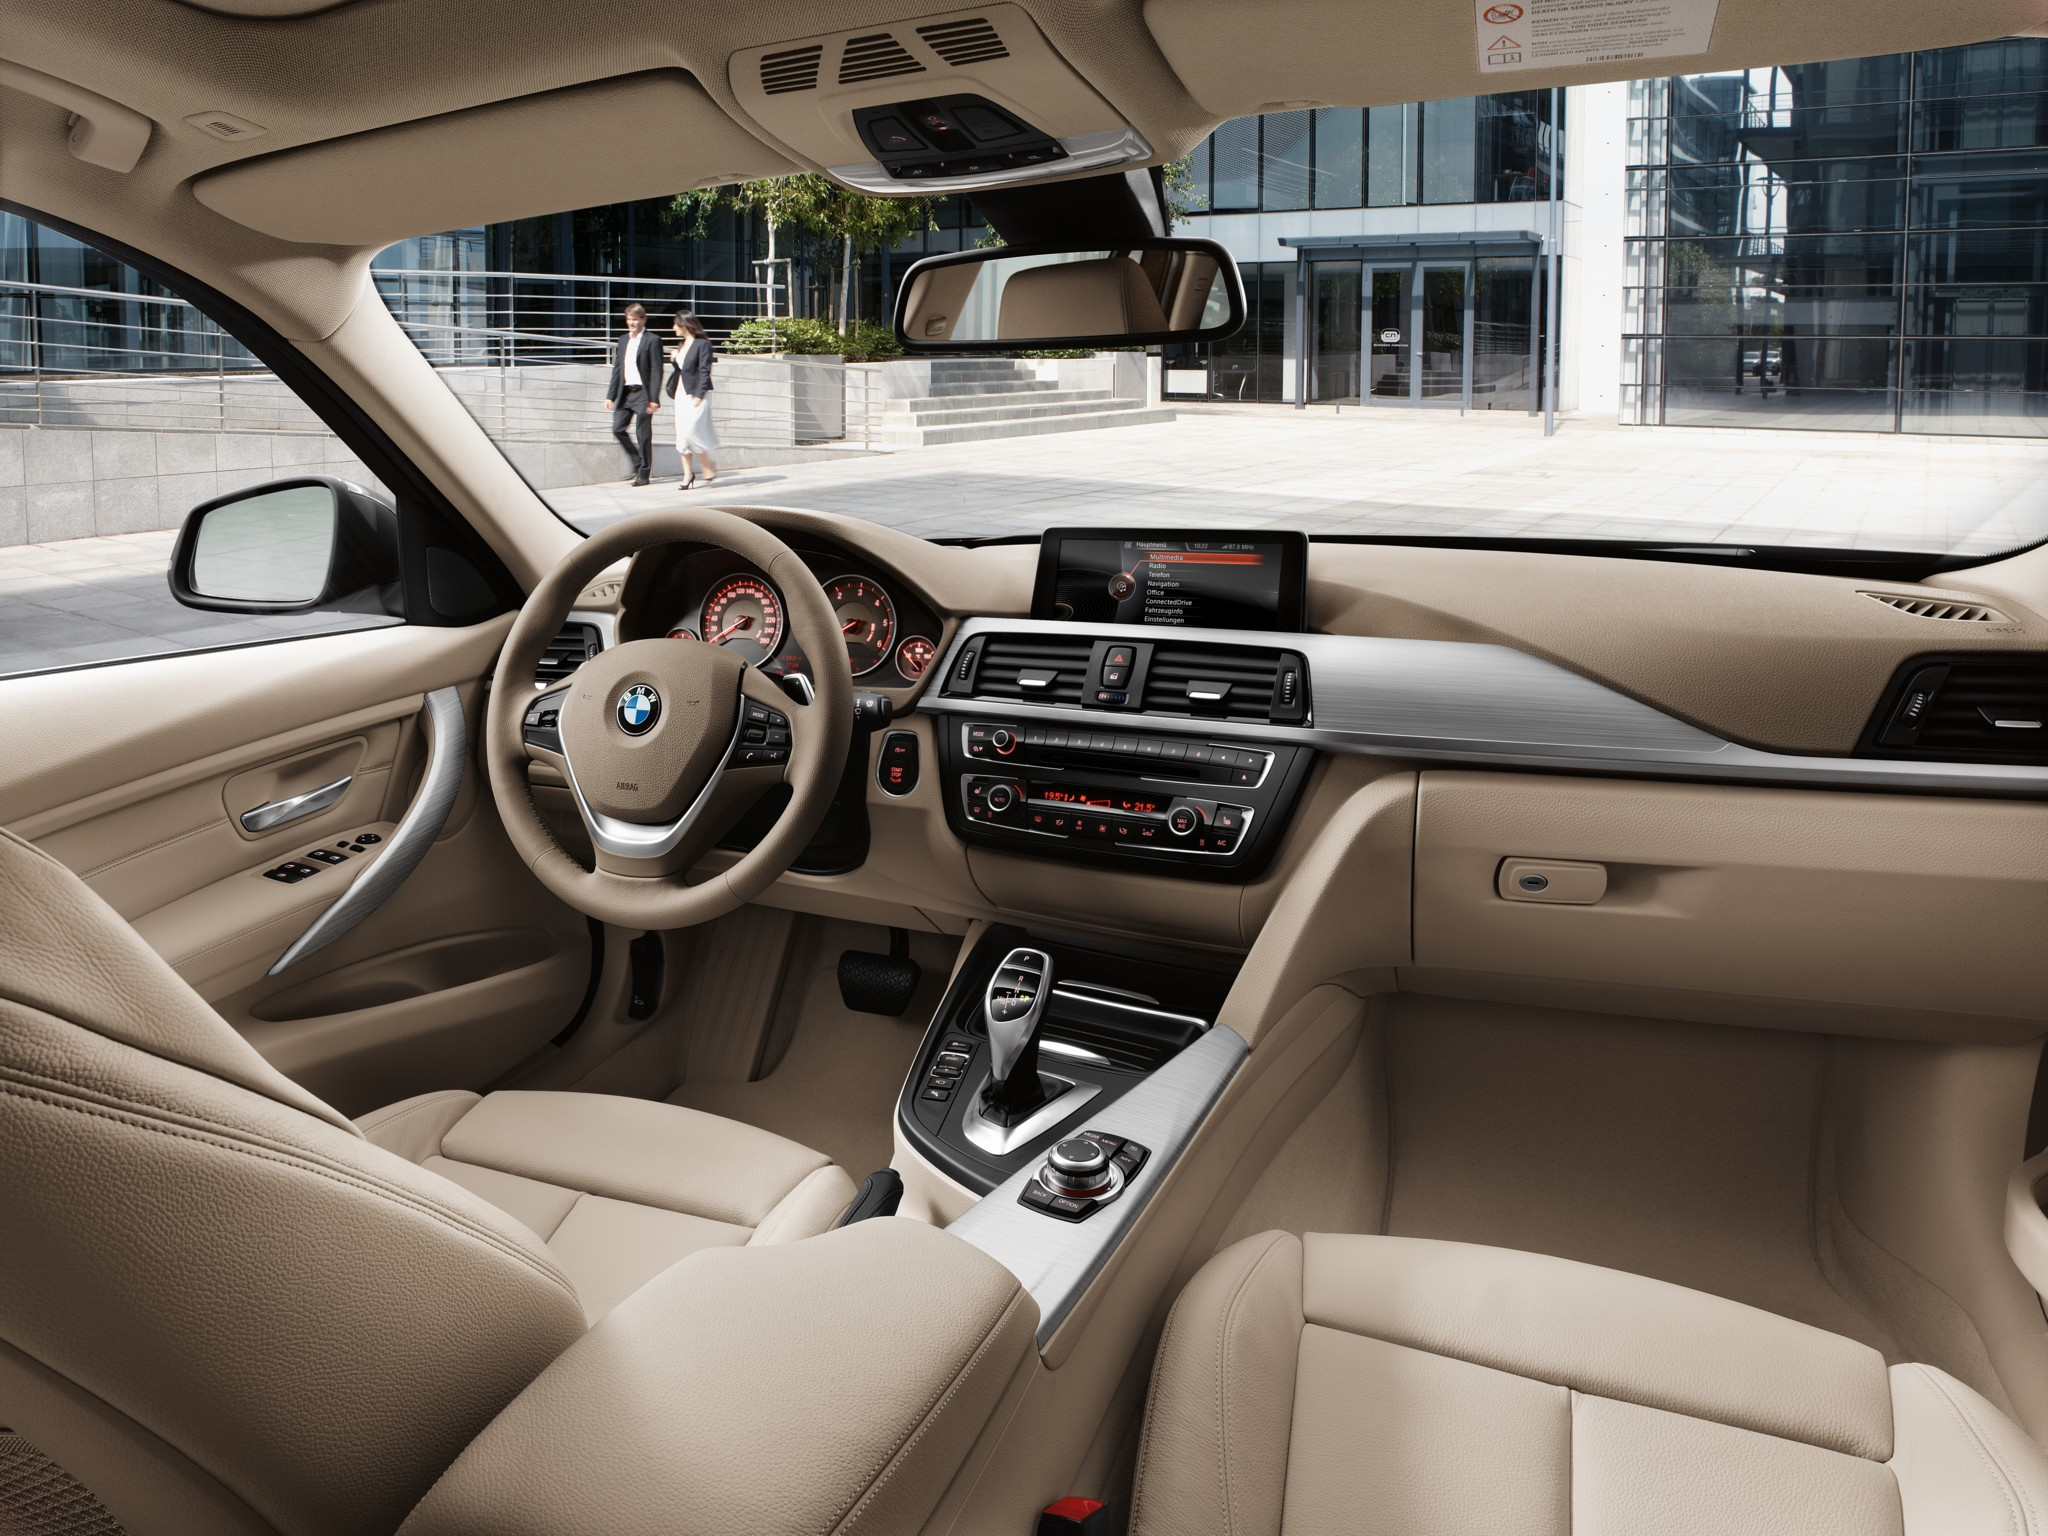 Used 2012 BMW 3 Series for sale - Pricing & Features | Edmunds